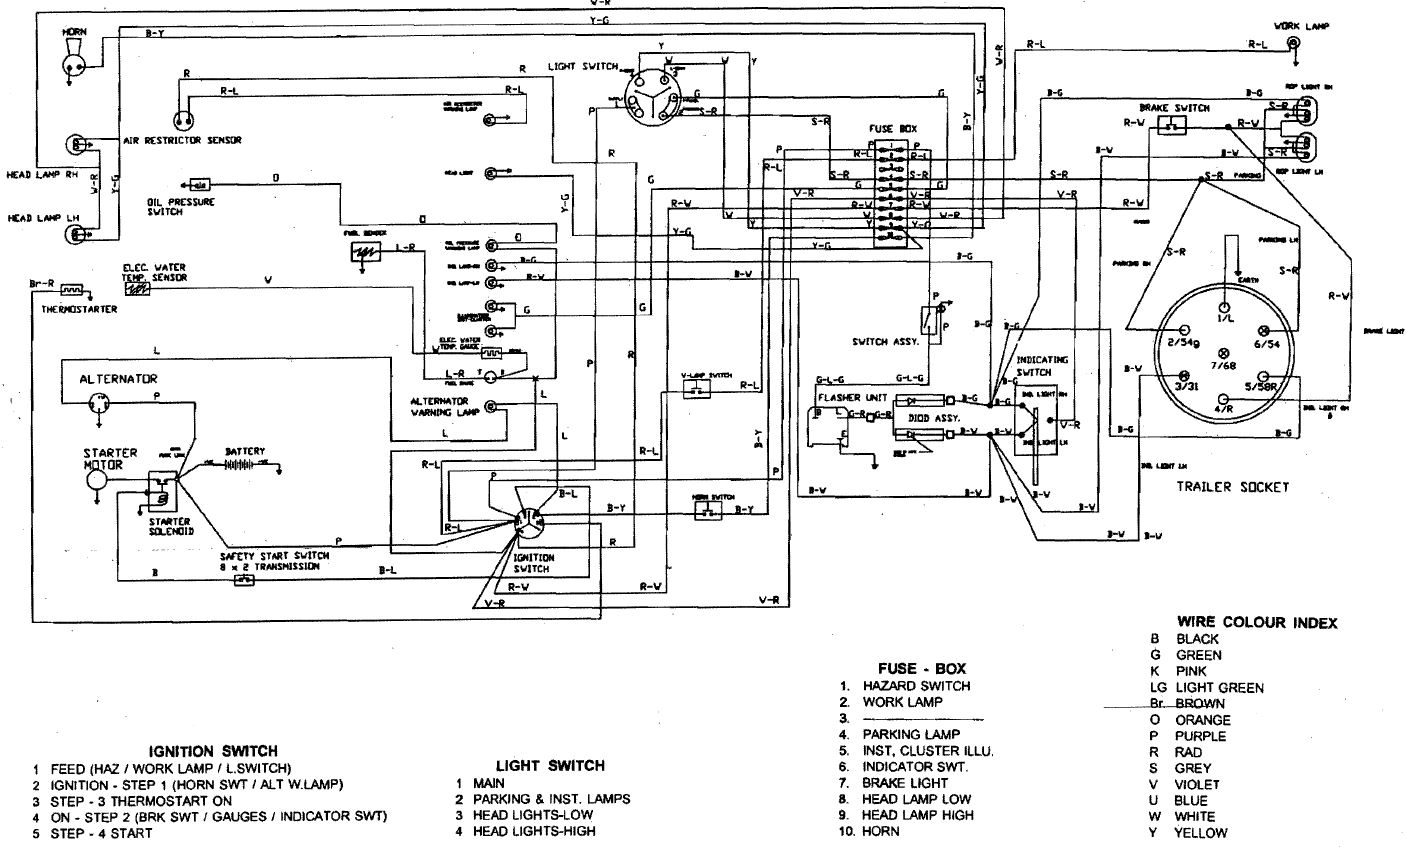 20158463319_b82d524c3d_o ignition switch wiring diagram john deere lawn mower wiring diagrams at alyssarenee.co